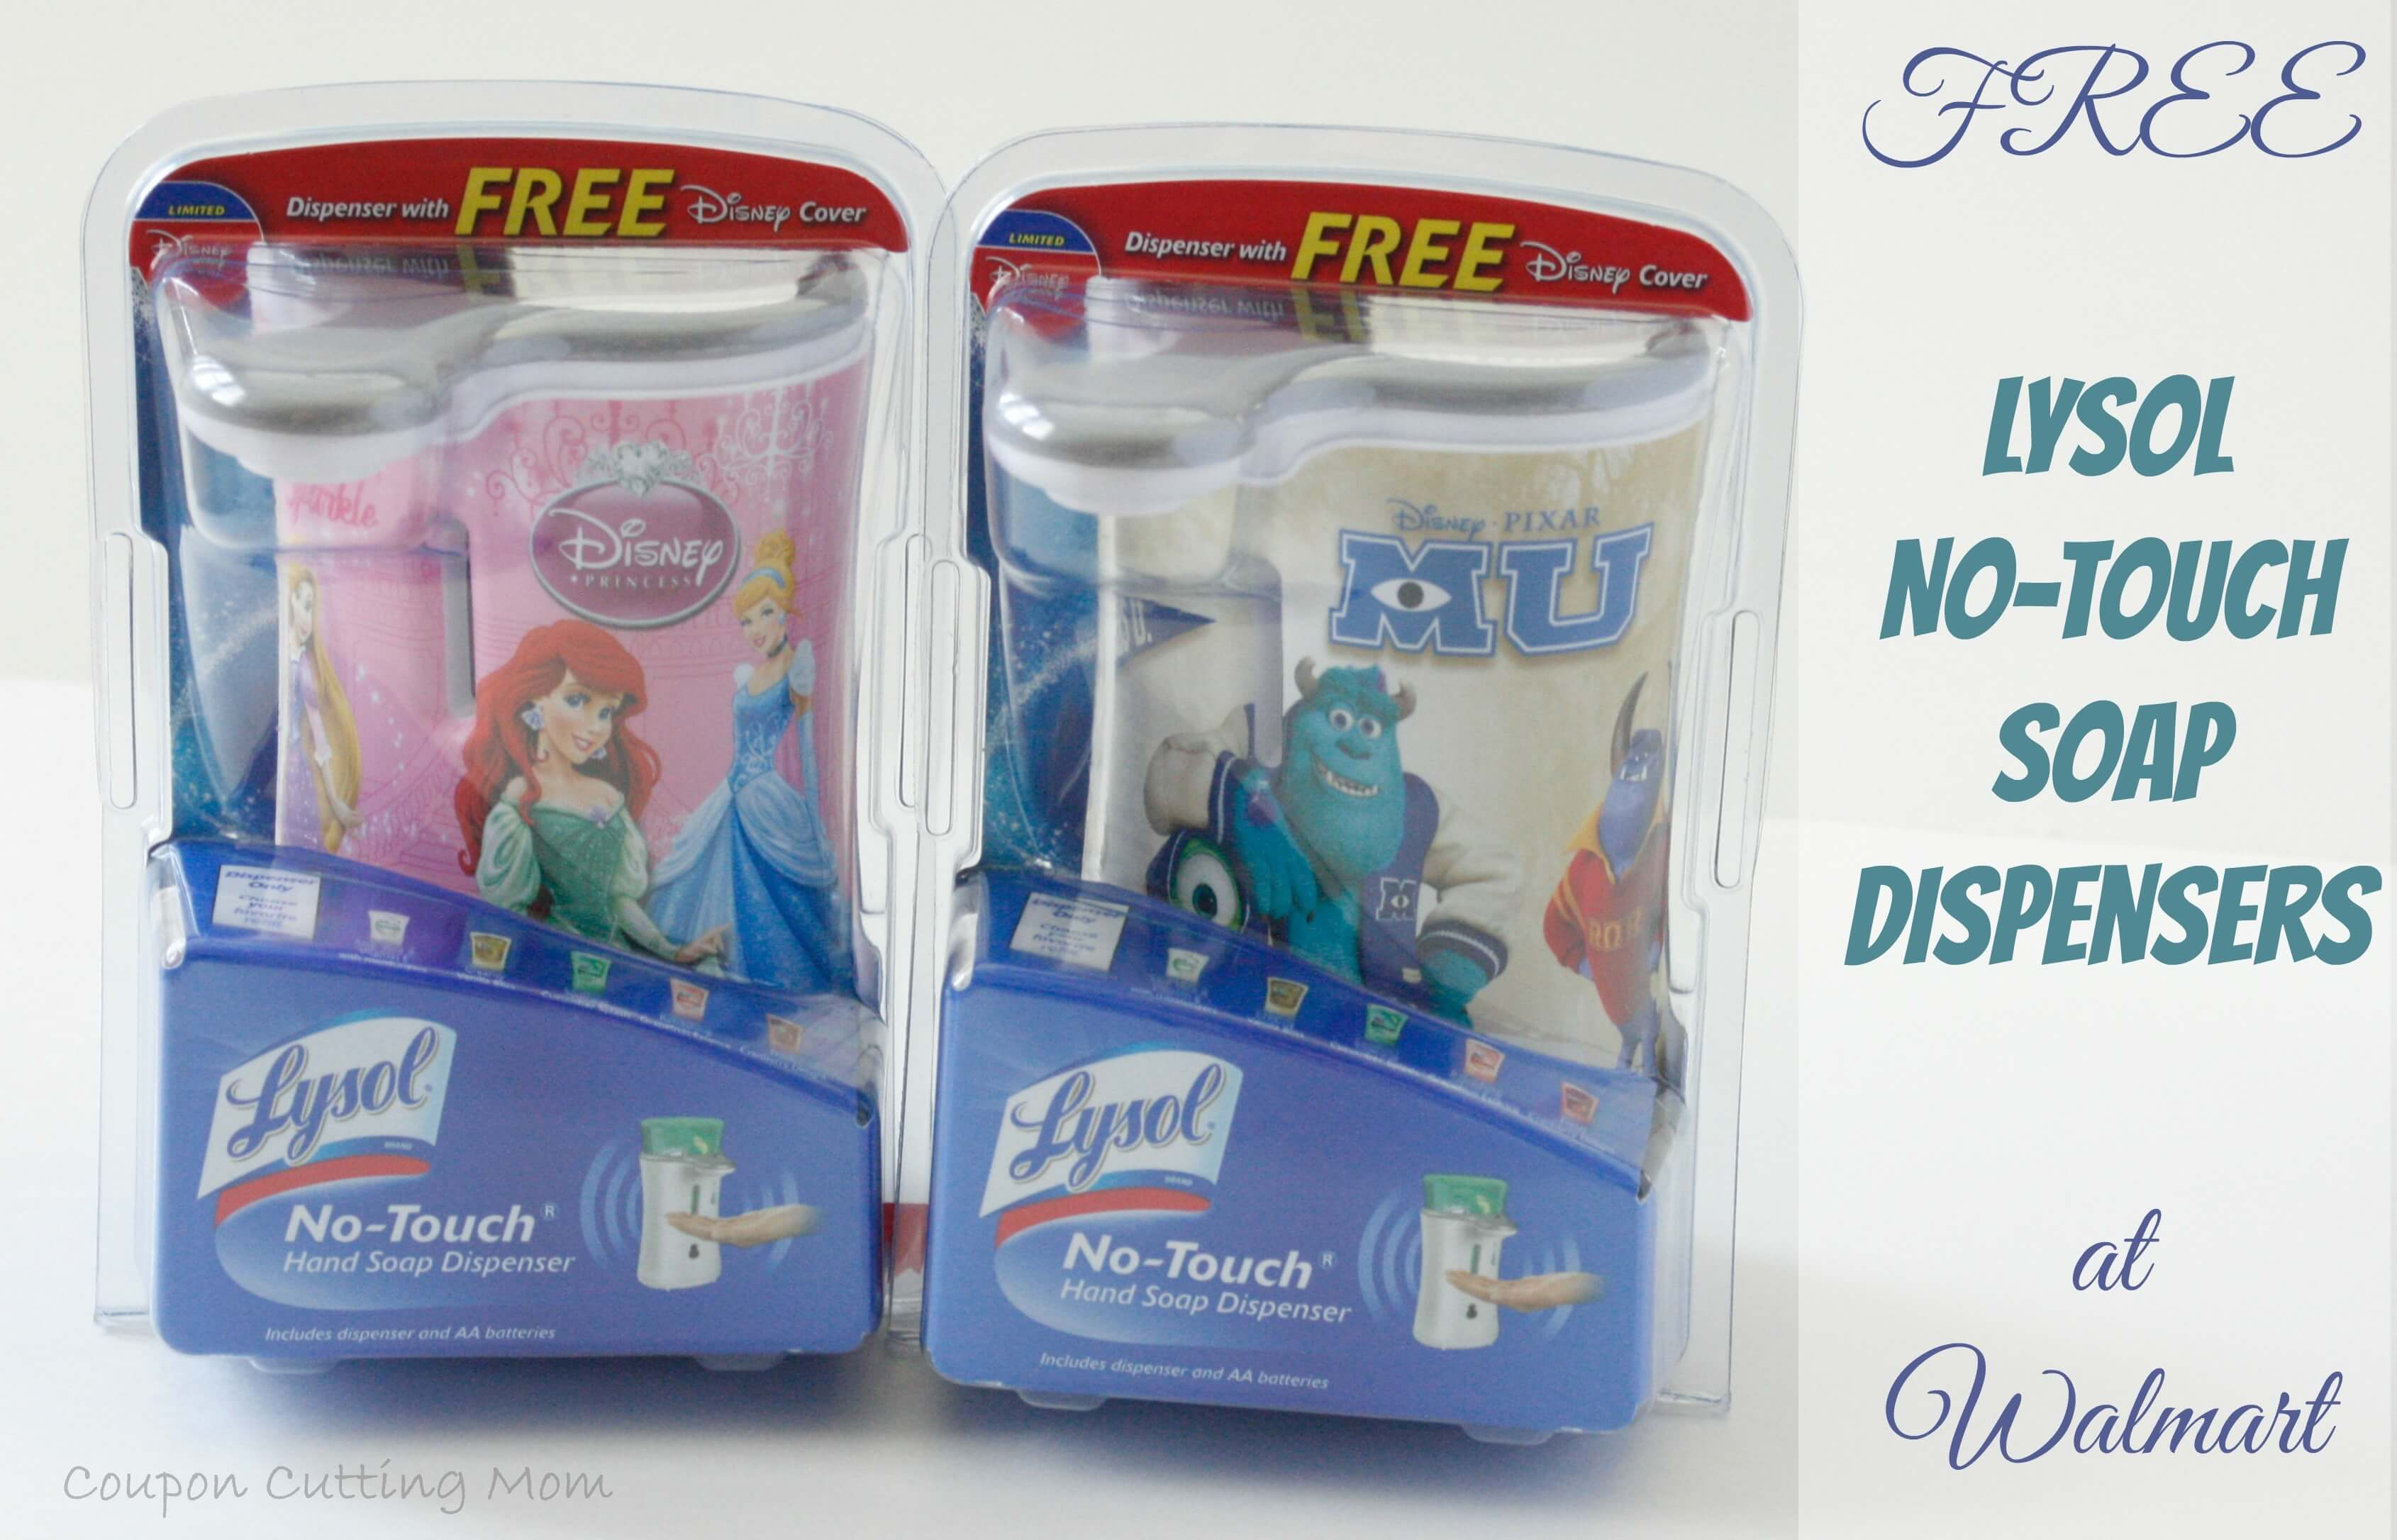 Free lysol no touch dispenser coupon 2018 / Healthkart discount ...